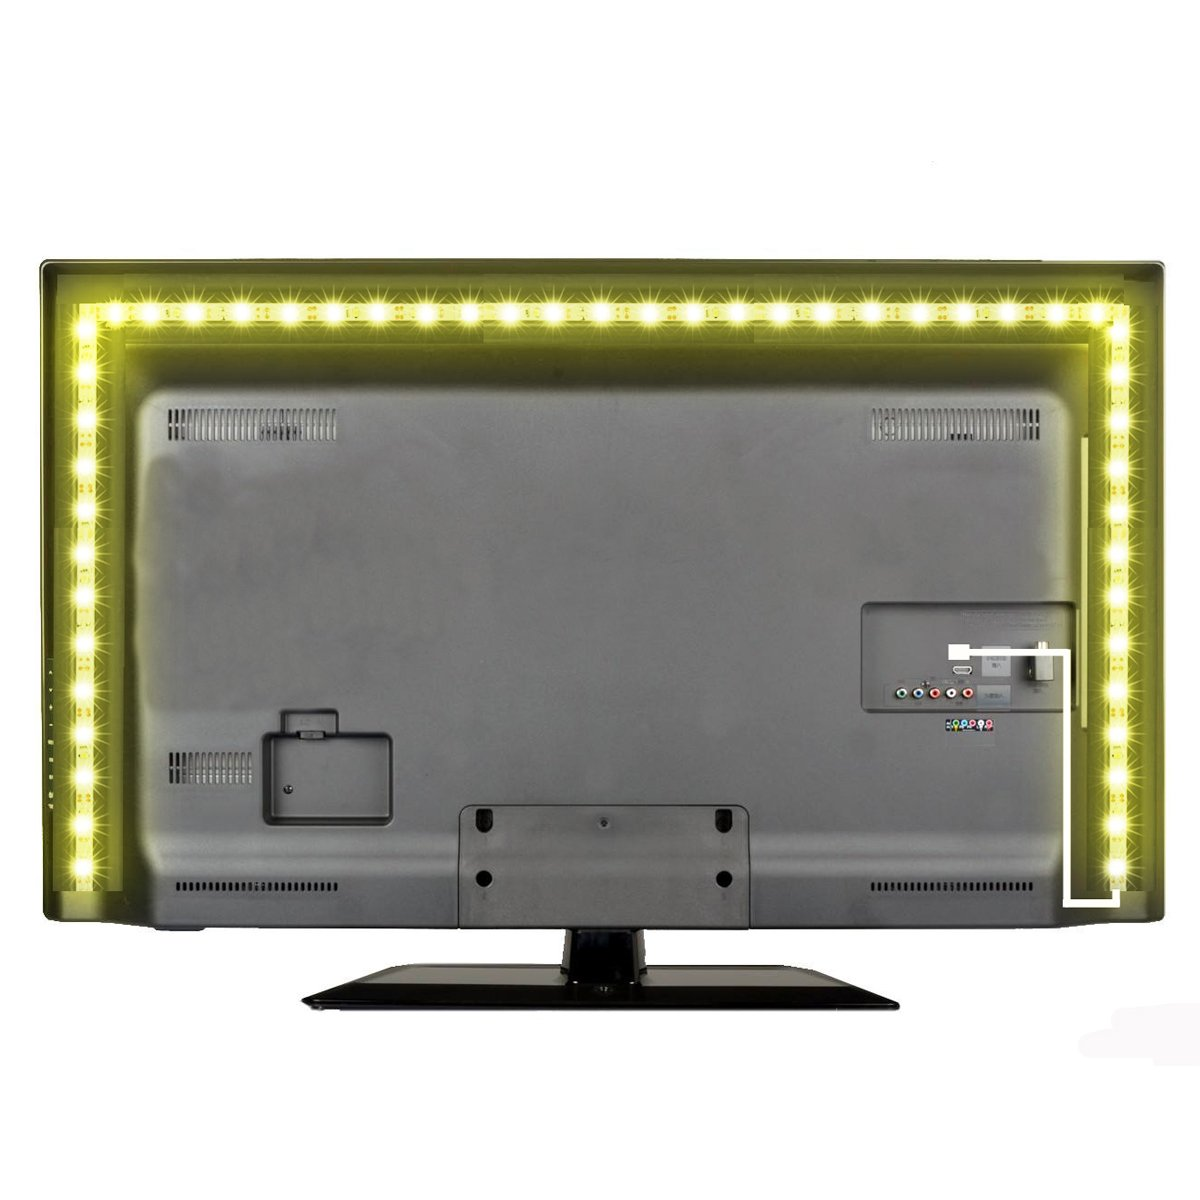 Cheap 40 Inches Led Tv Price In India Find 40 Inches Led Tv Price